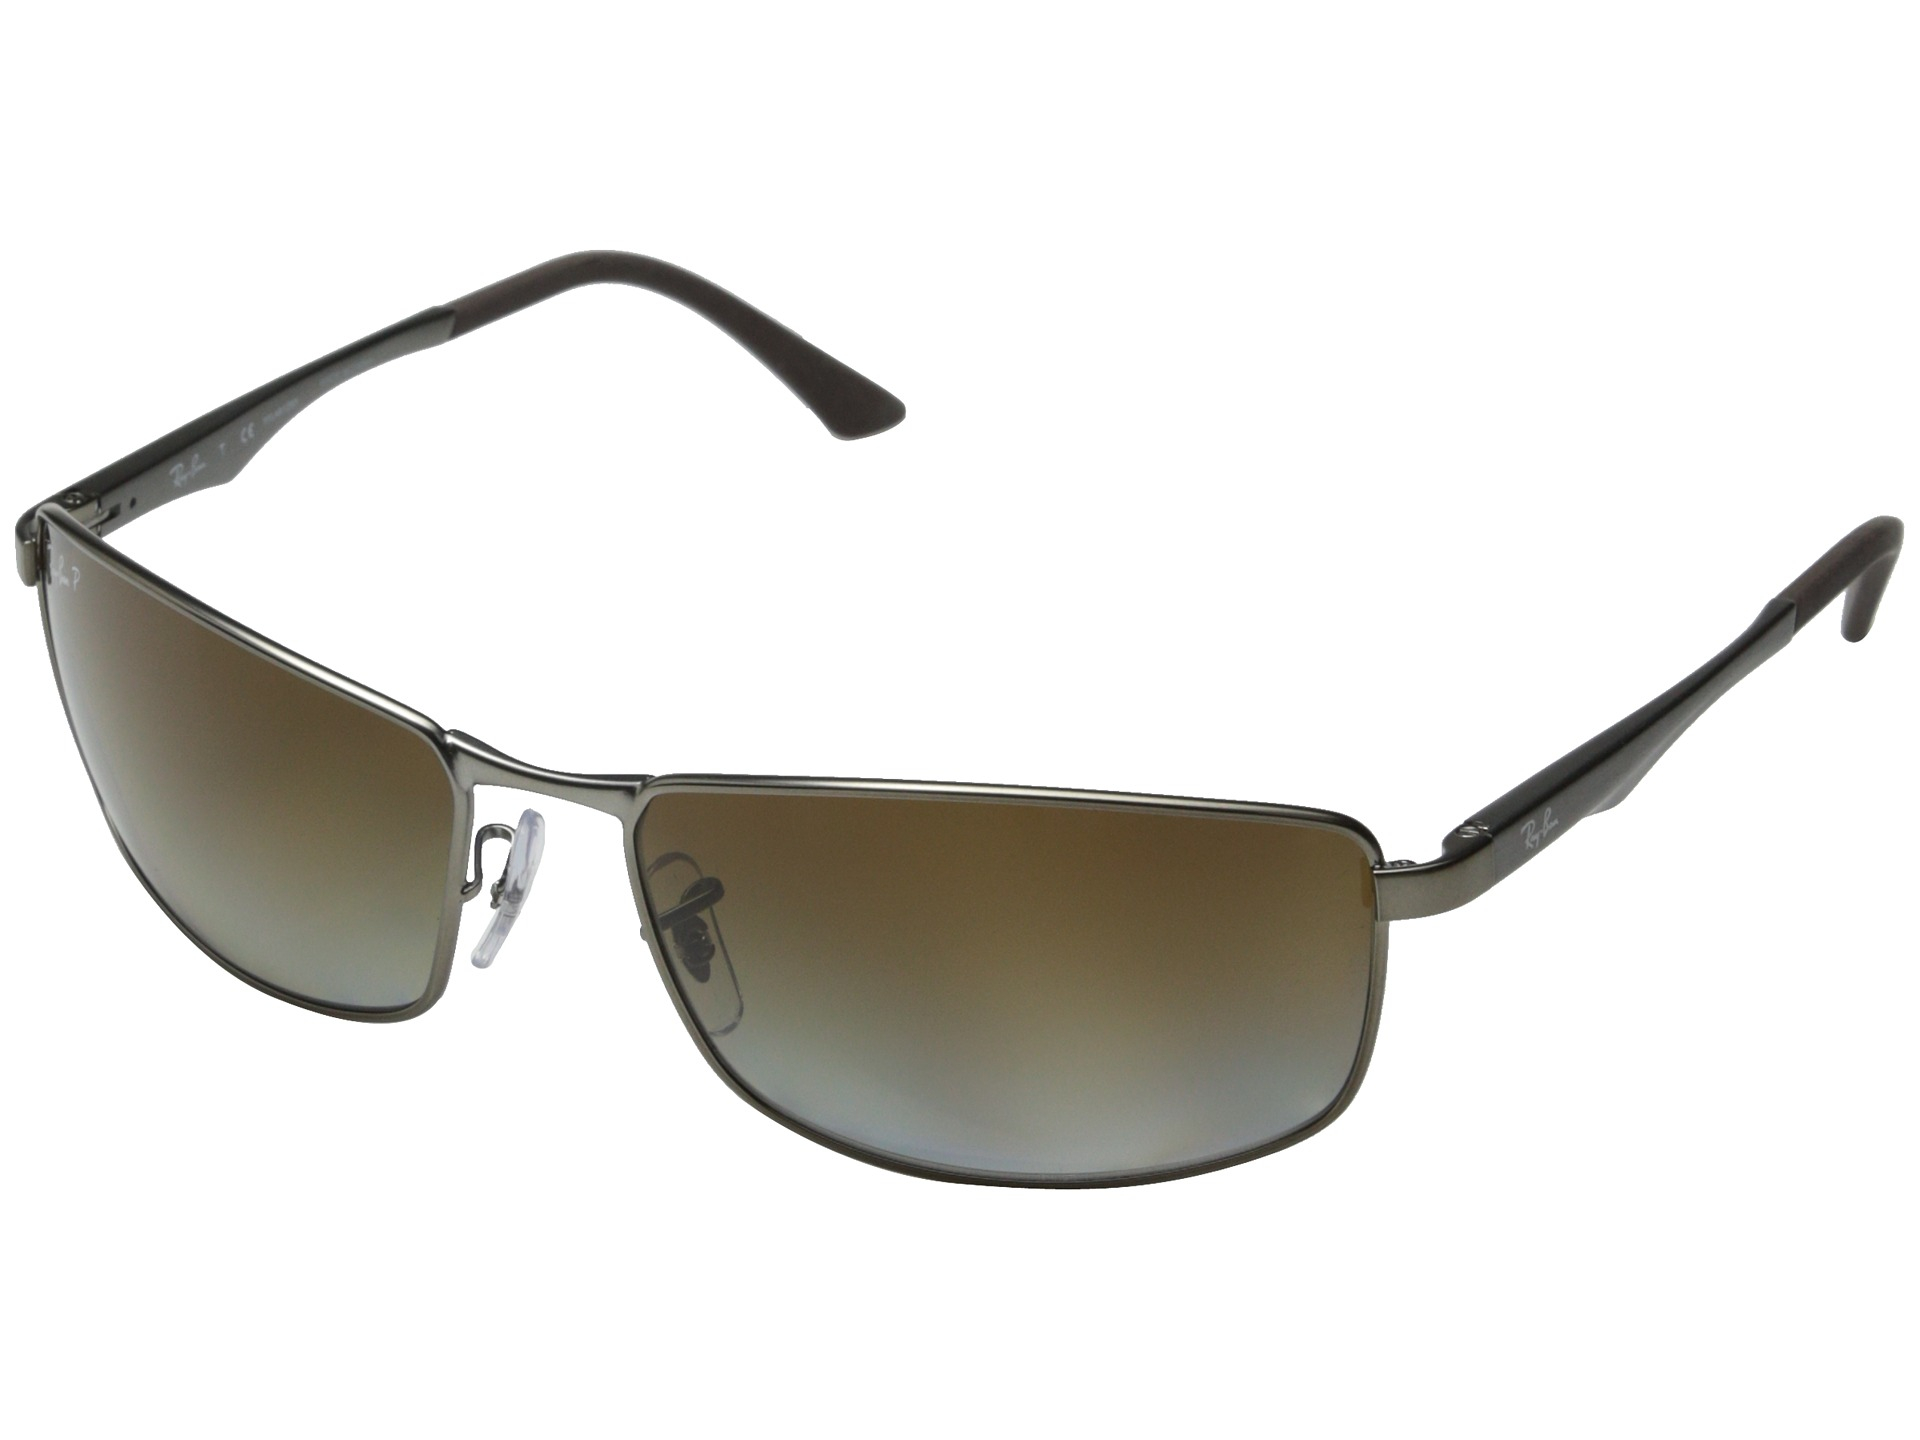 fdb7a6ed46 Ray-ban Rb3498 Polarized 64Mm in Silver for Men (Matte Gunmetal Grey  Gradient